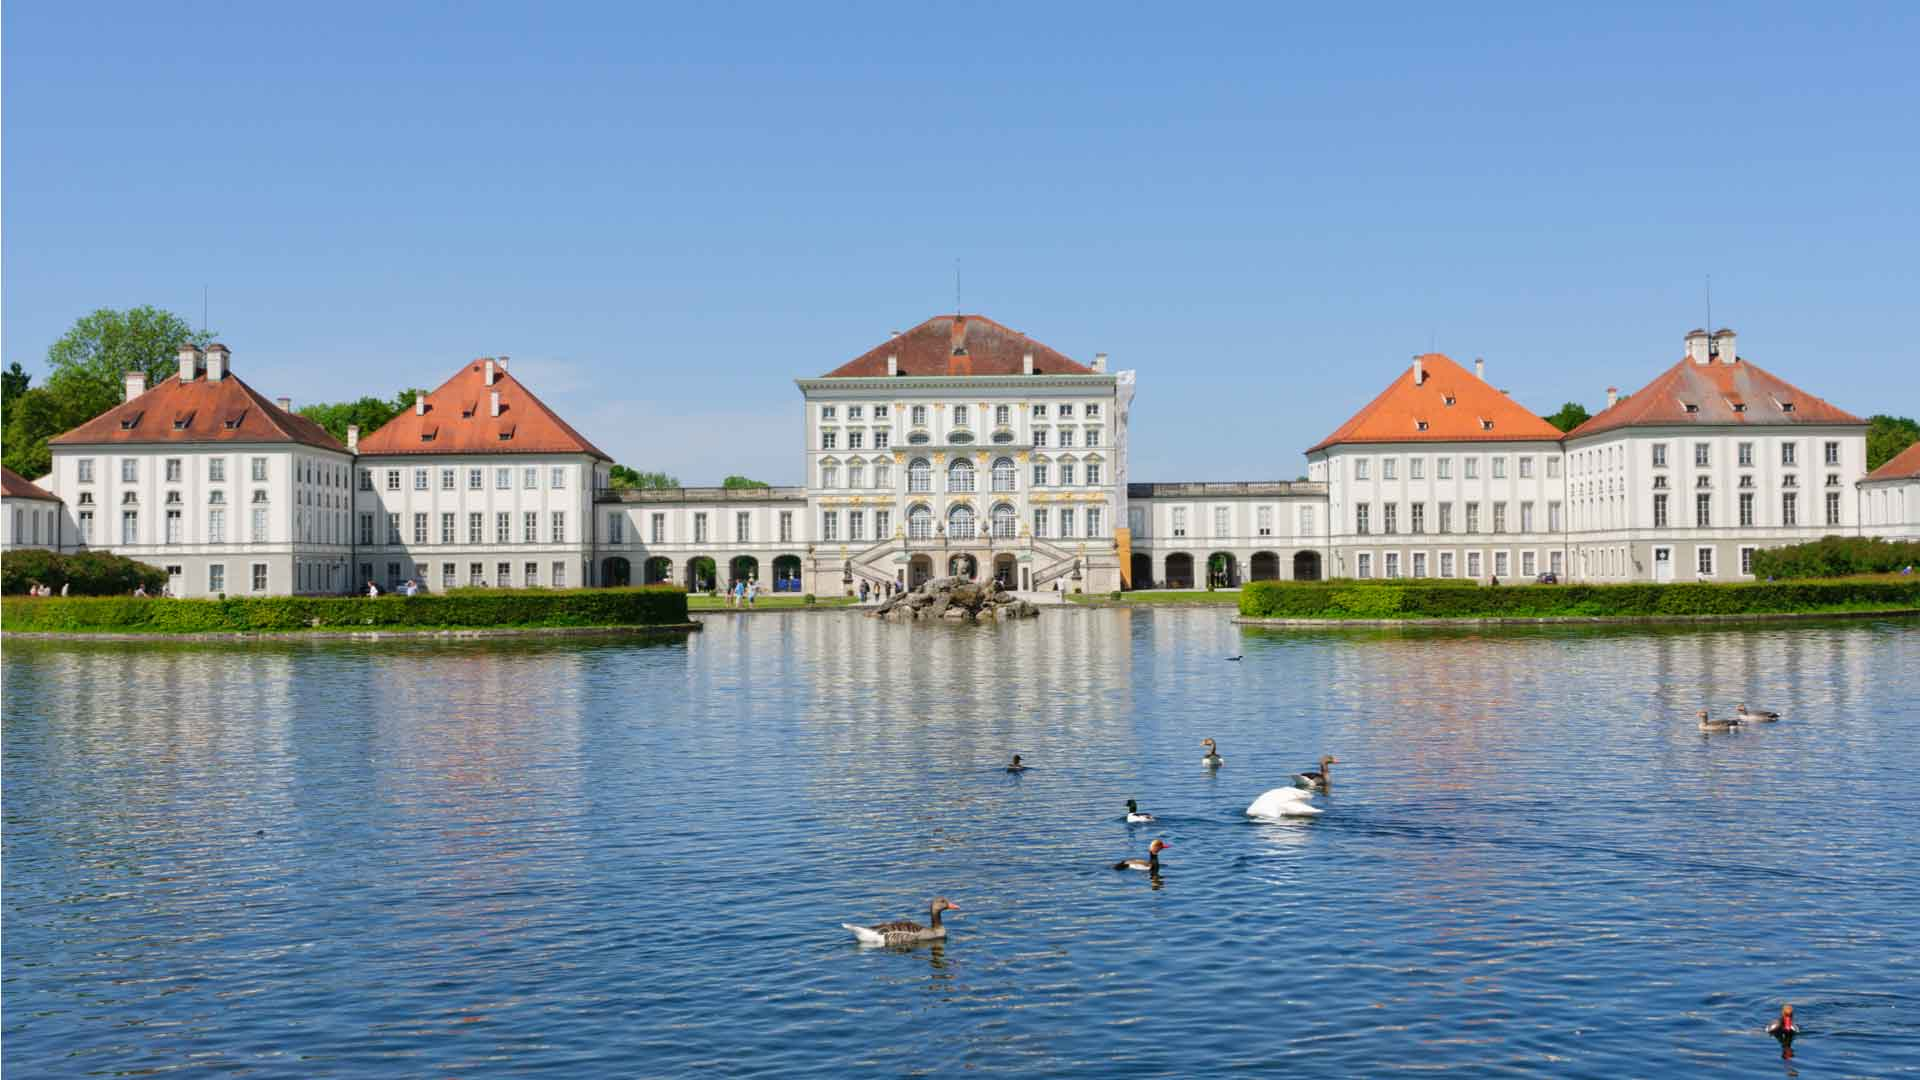 Cash Pool Flughafen München Eastern Europe Coach Tour Tours From Munich Expat Explore